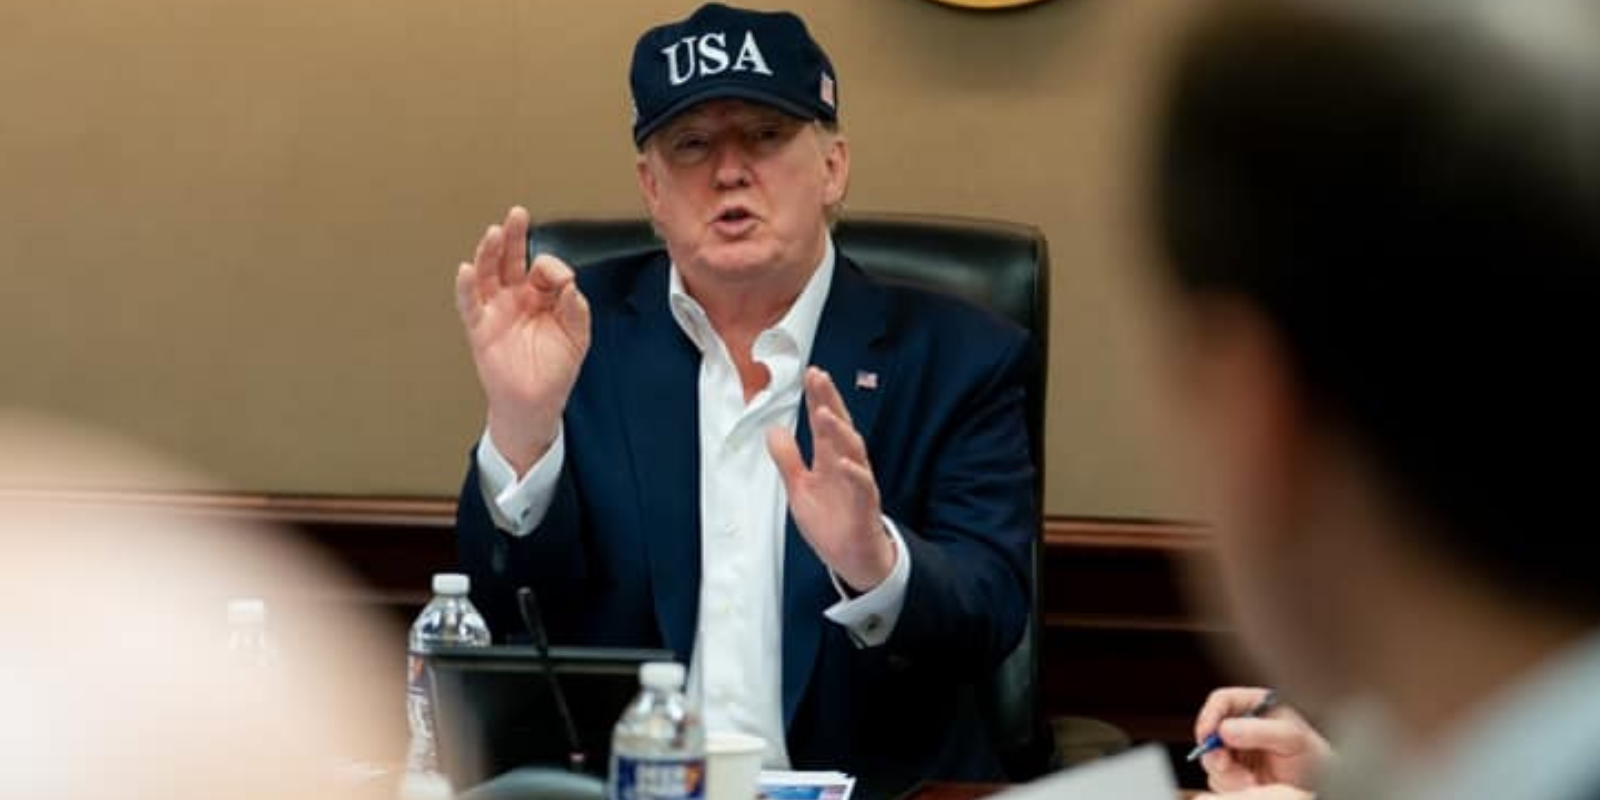 Trump hits back hard at Wall Street Journal, Mitch McConnell, RINOs in blistering statement